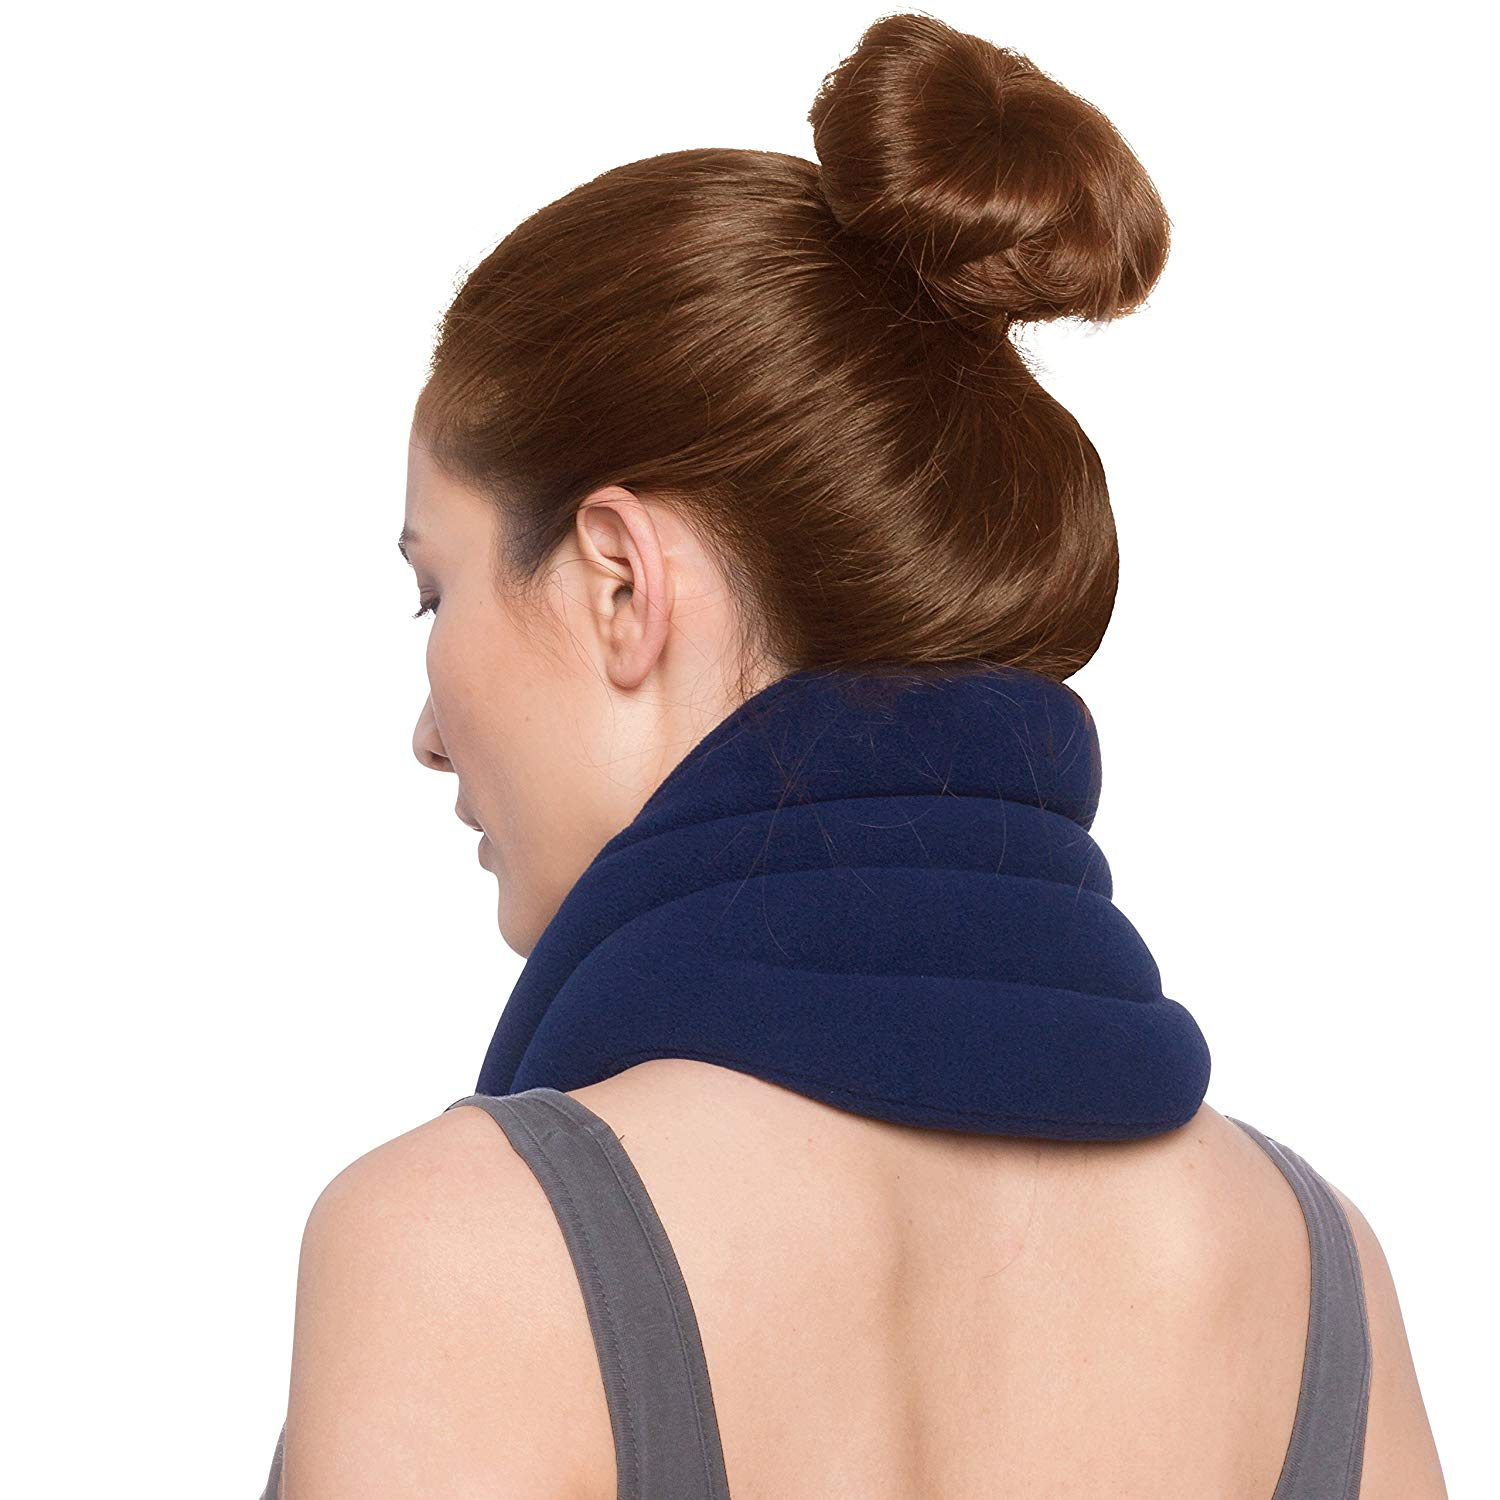 Sunny Bay Hands-Free Neck Heating Wrap: Microwavable Thermal Hot Pack, Heat Therapy Neck Brace for Sore Neck Shoulder Muscle Pain Relief - Personal, Reusable, Blue